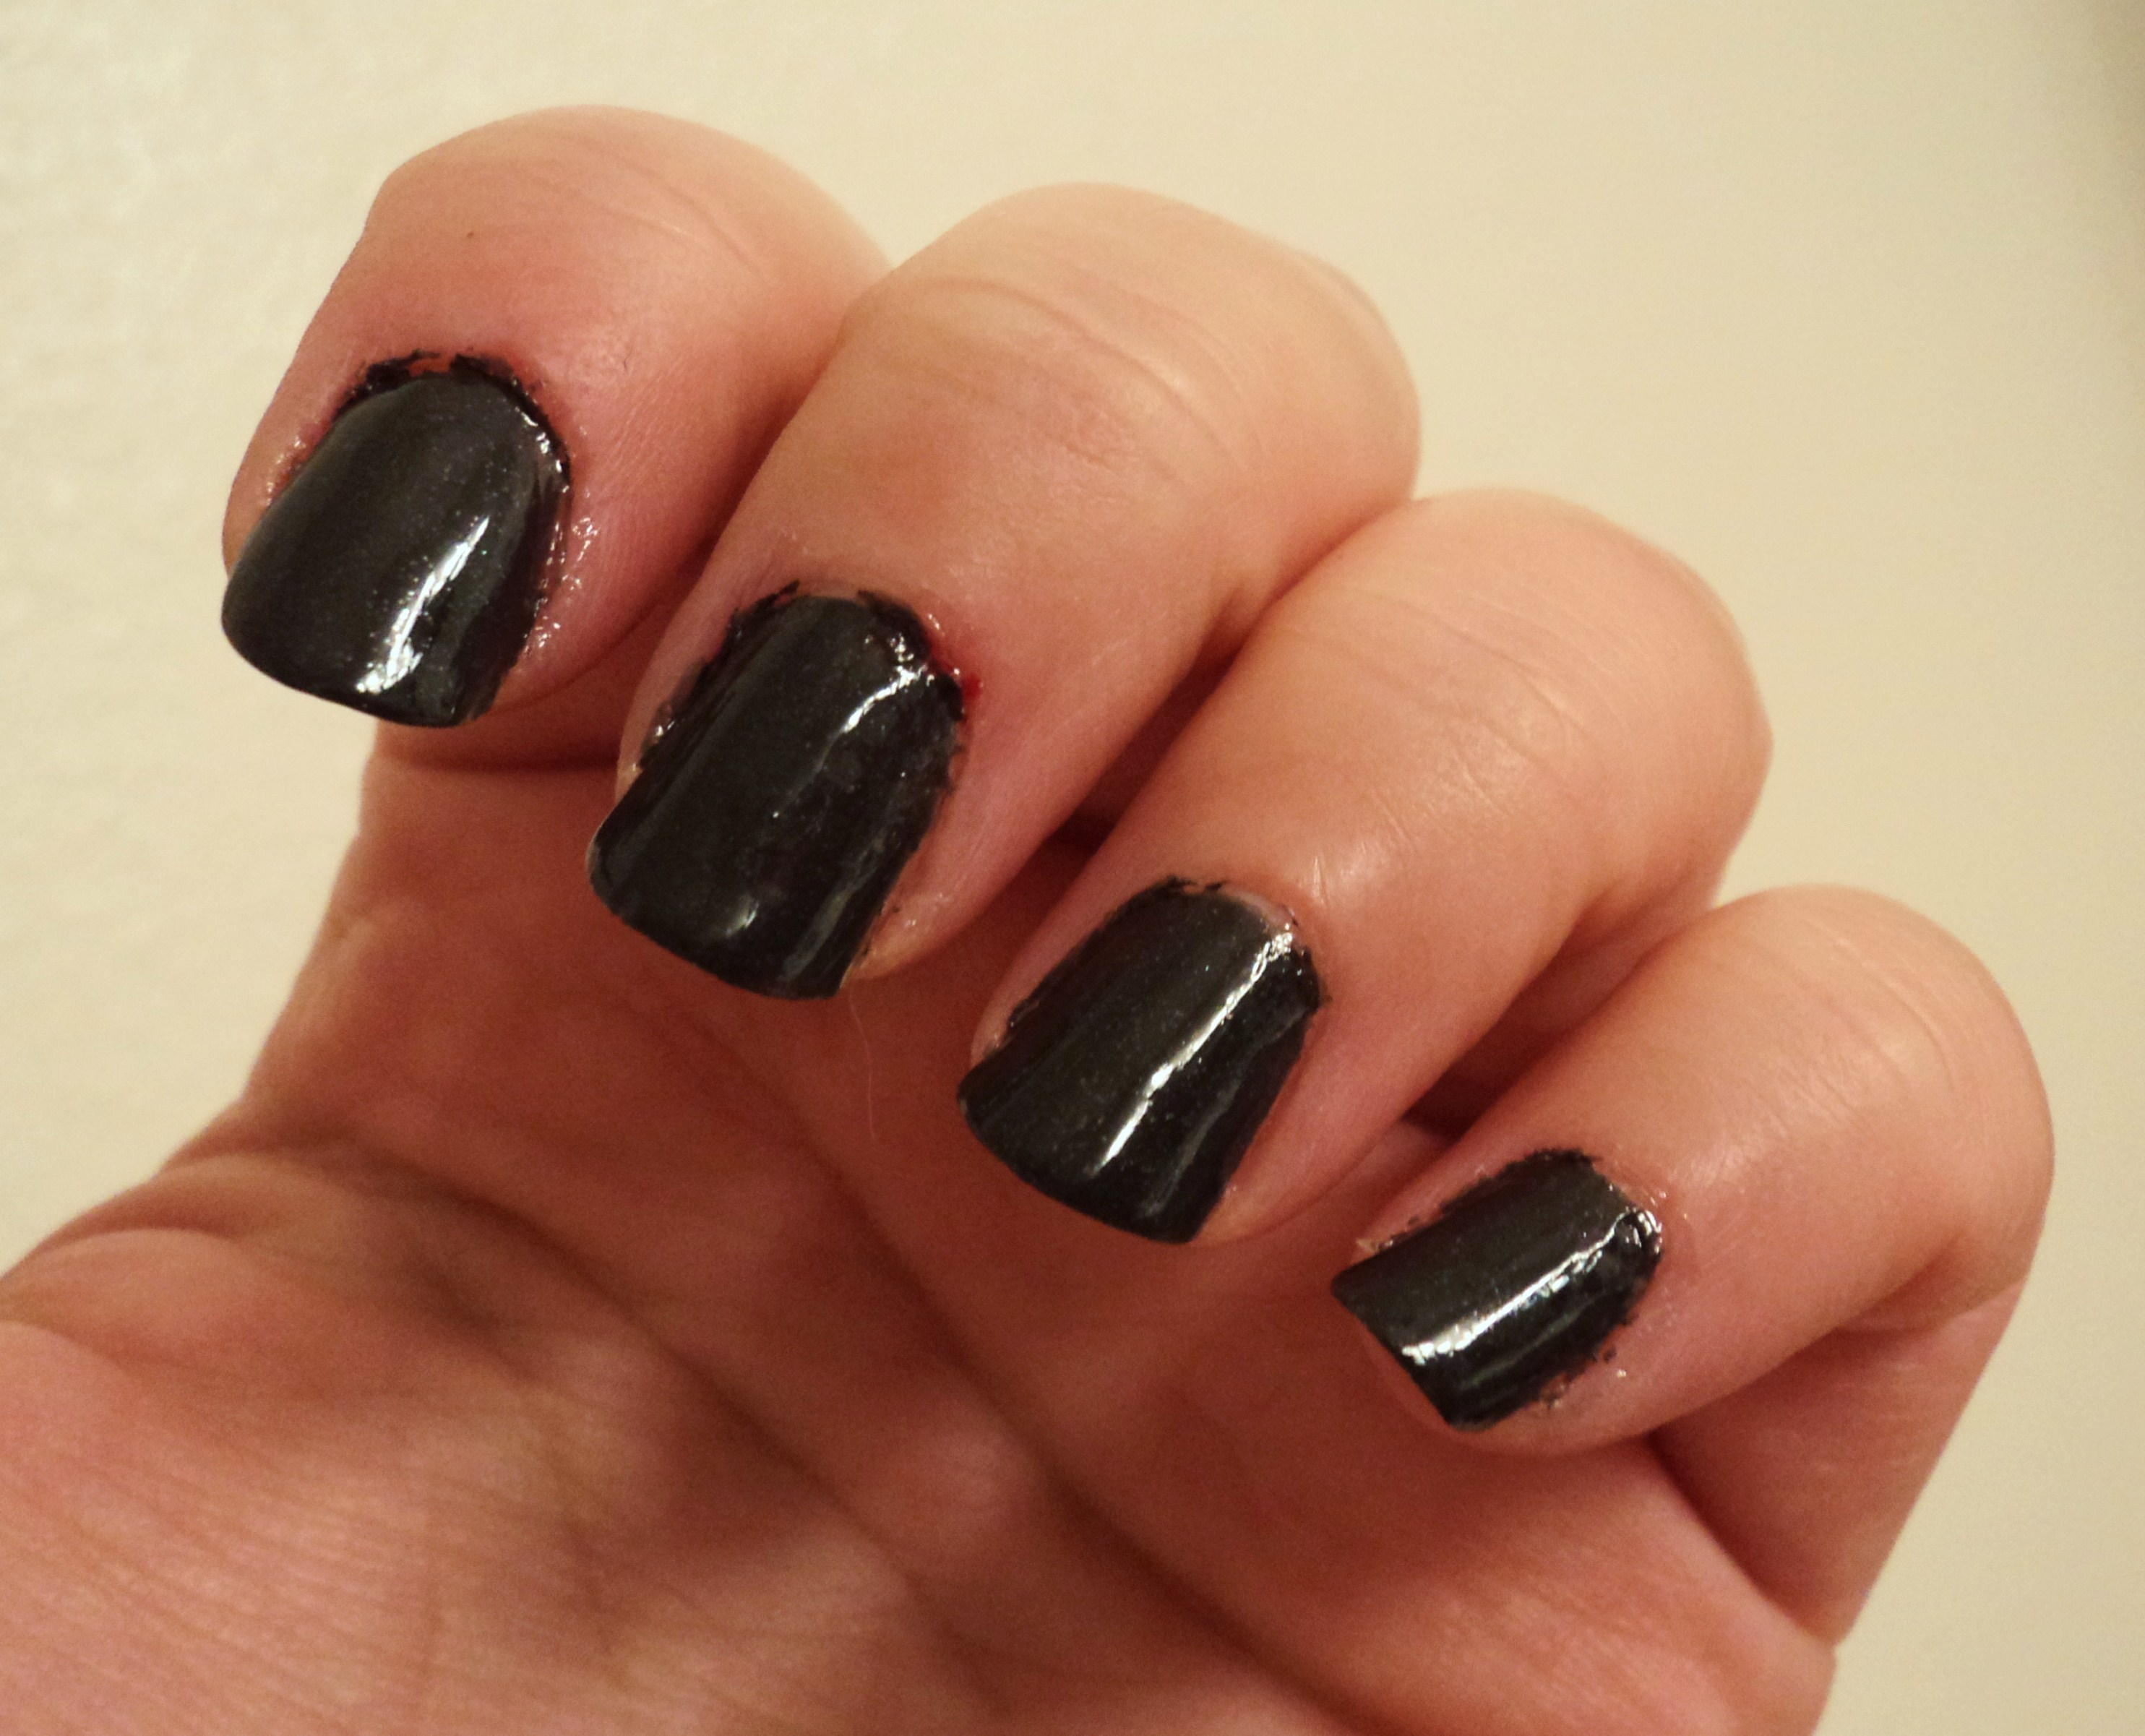 Black Nail Polish Essie it Over Black Nail Polish